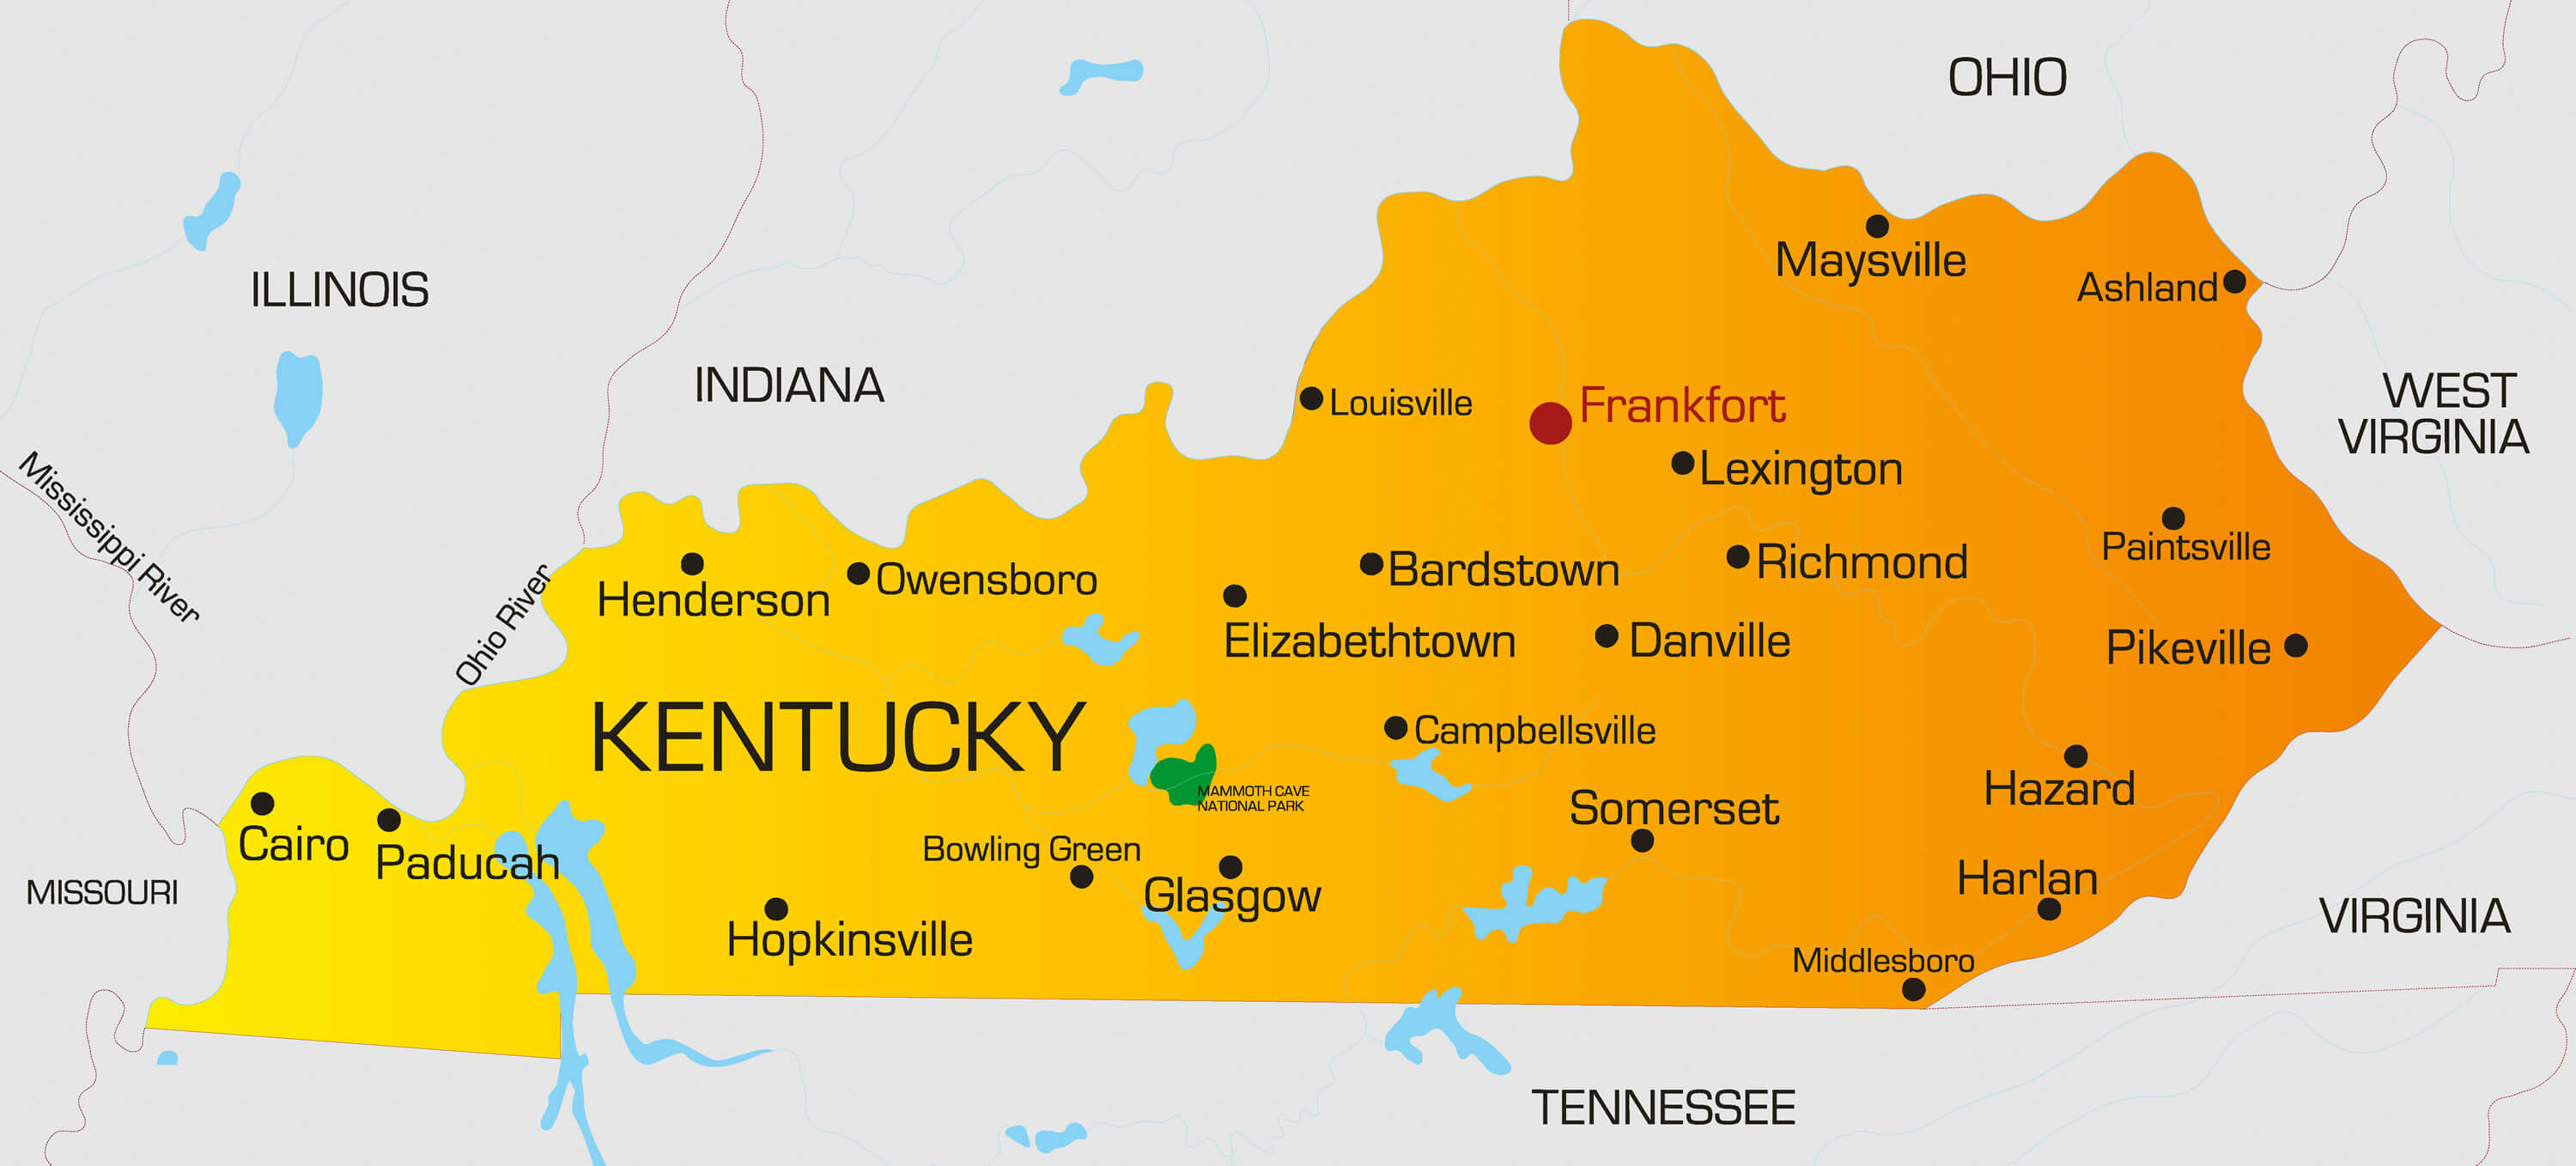 color map of Kentucky